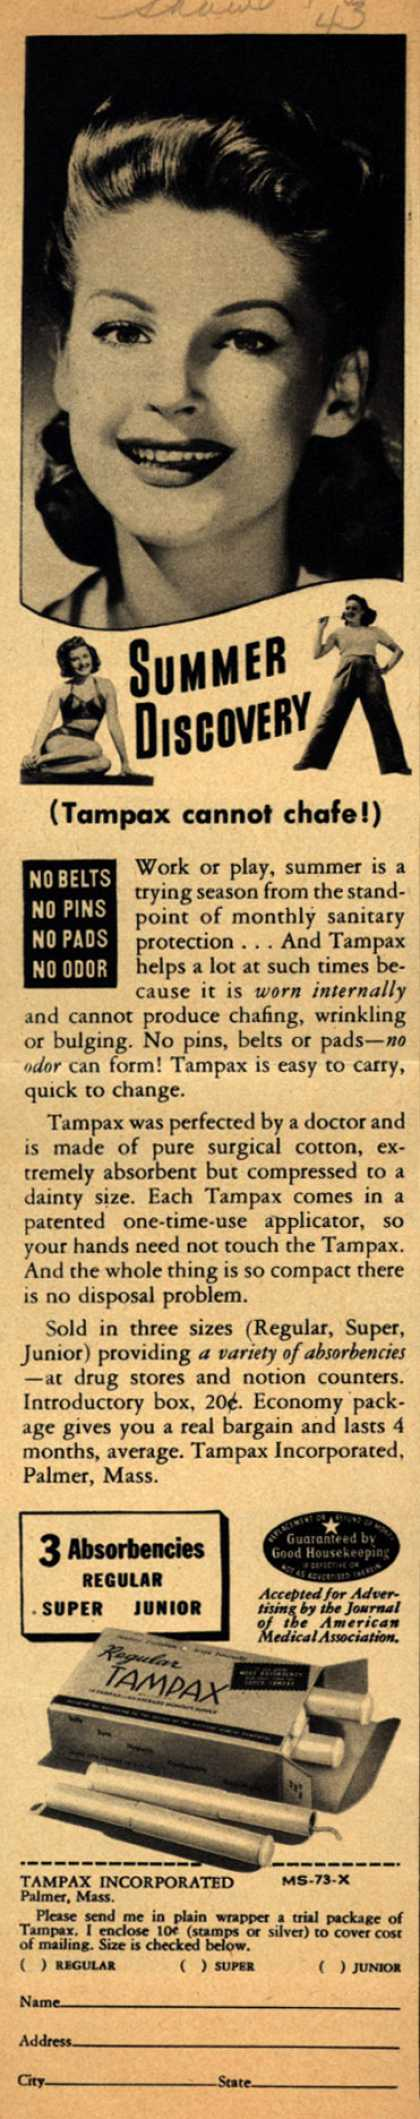 Tampax's Tampons – Summer Discovery (Tampax cannot chafe!) (1943)